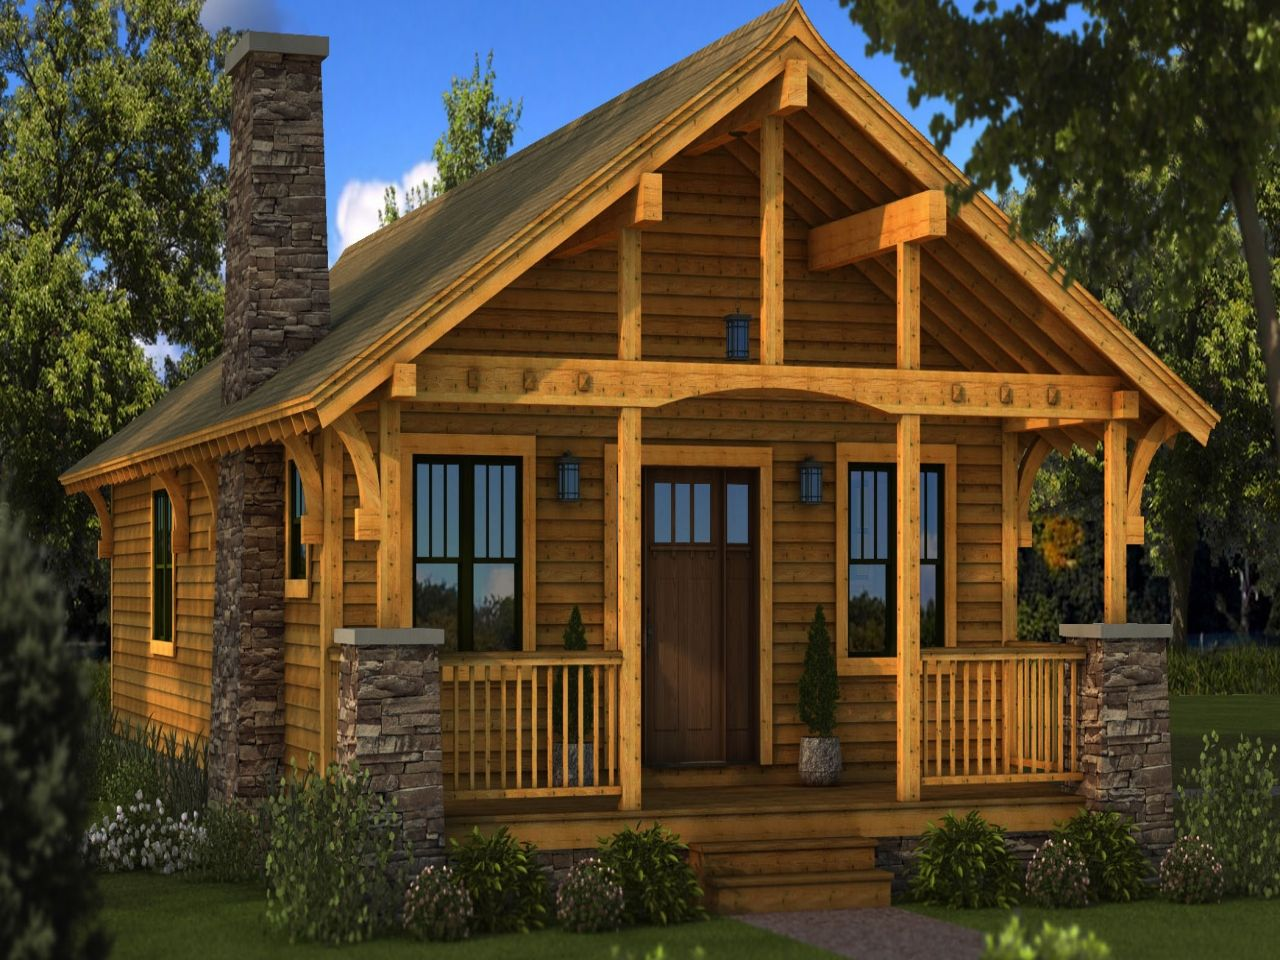 Small log cabin homes plans one story cabin plans for Cabins small